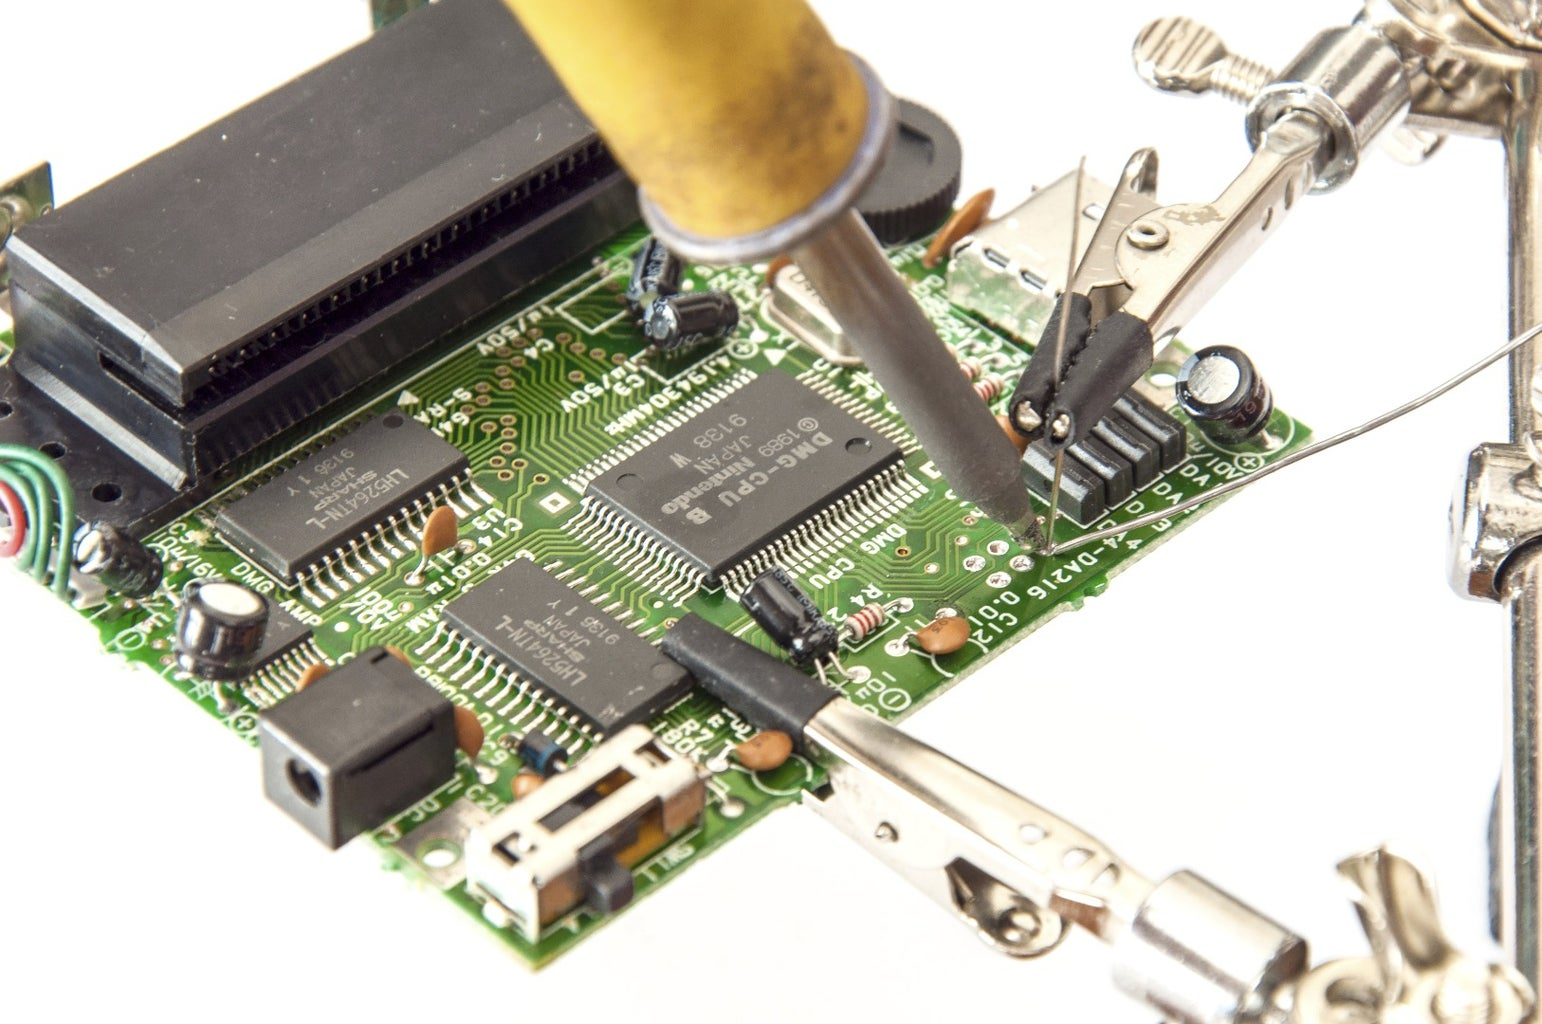 Solder 4 Leads or Wire to the Data, Ground, and Power Pads on the DMG Mainboard (CPU Side)